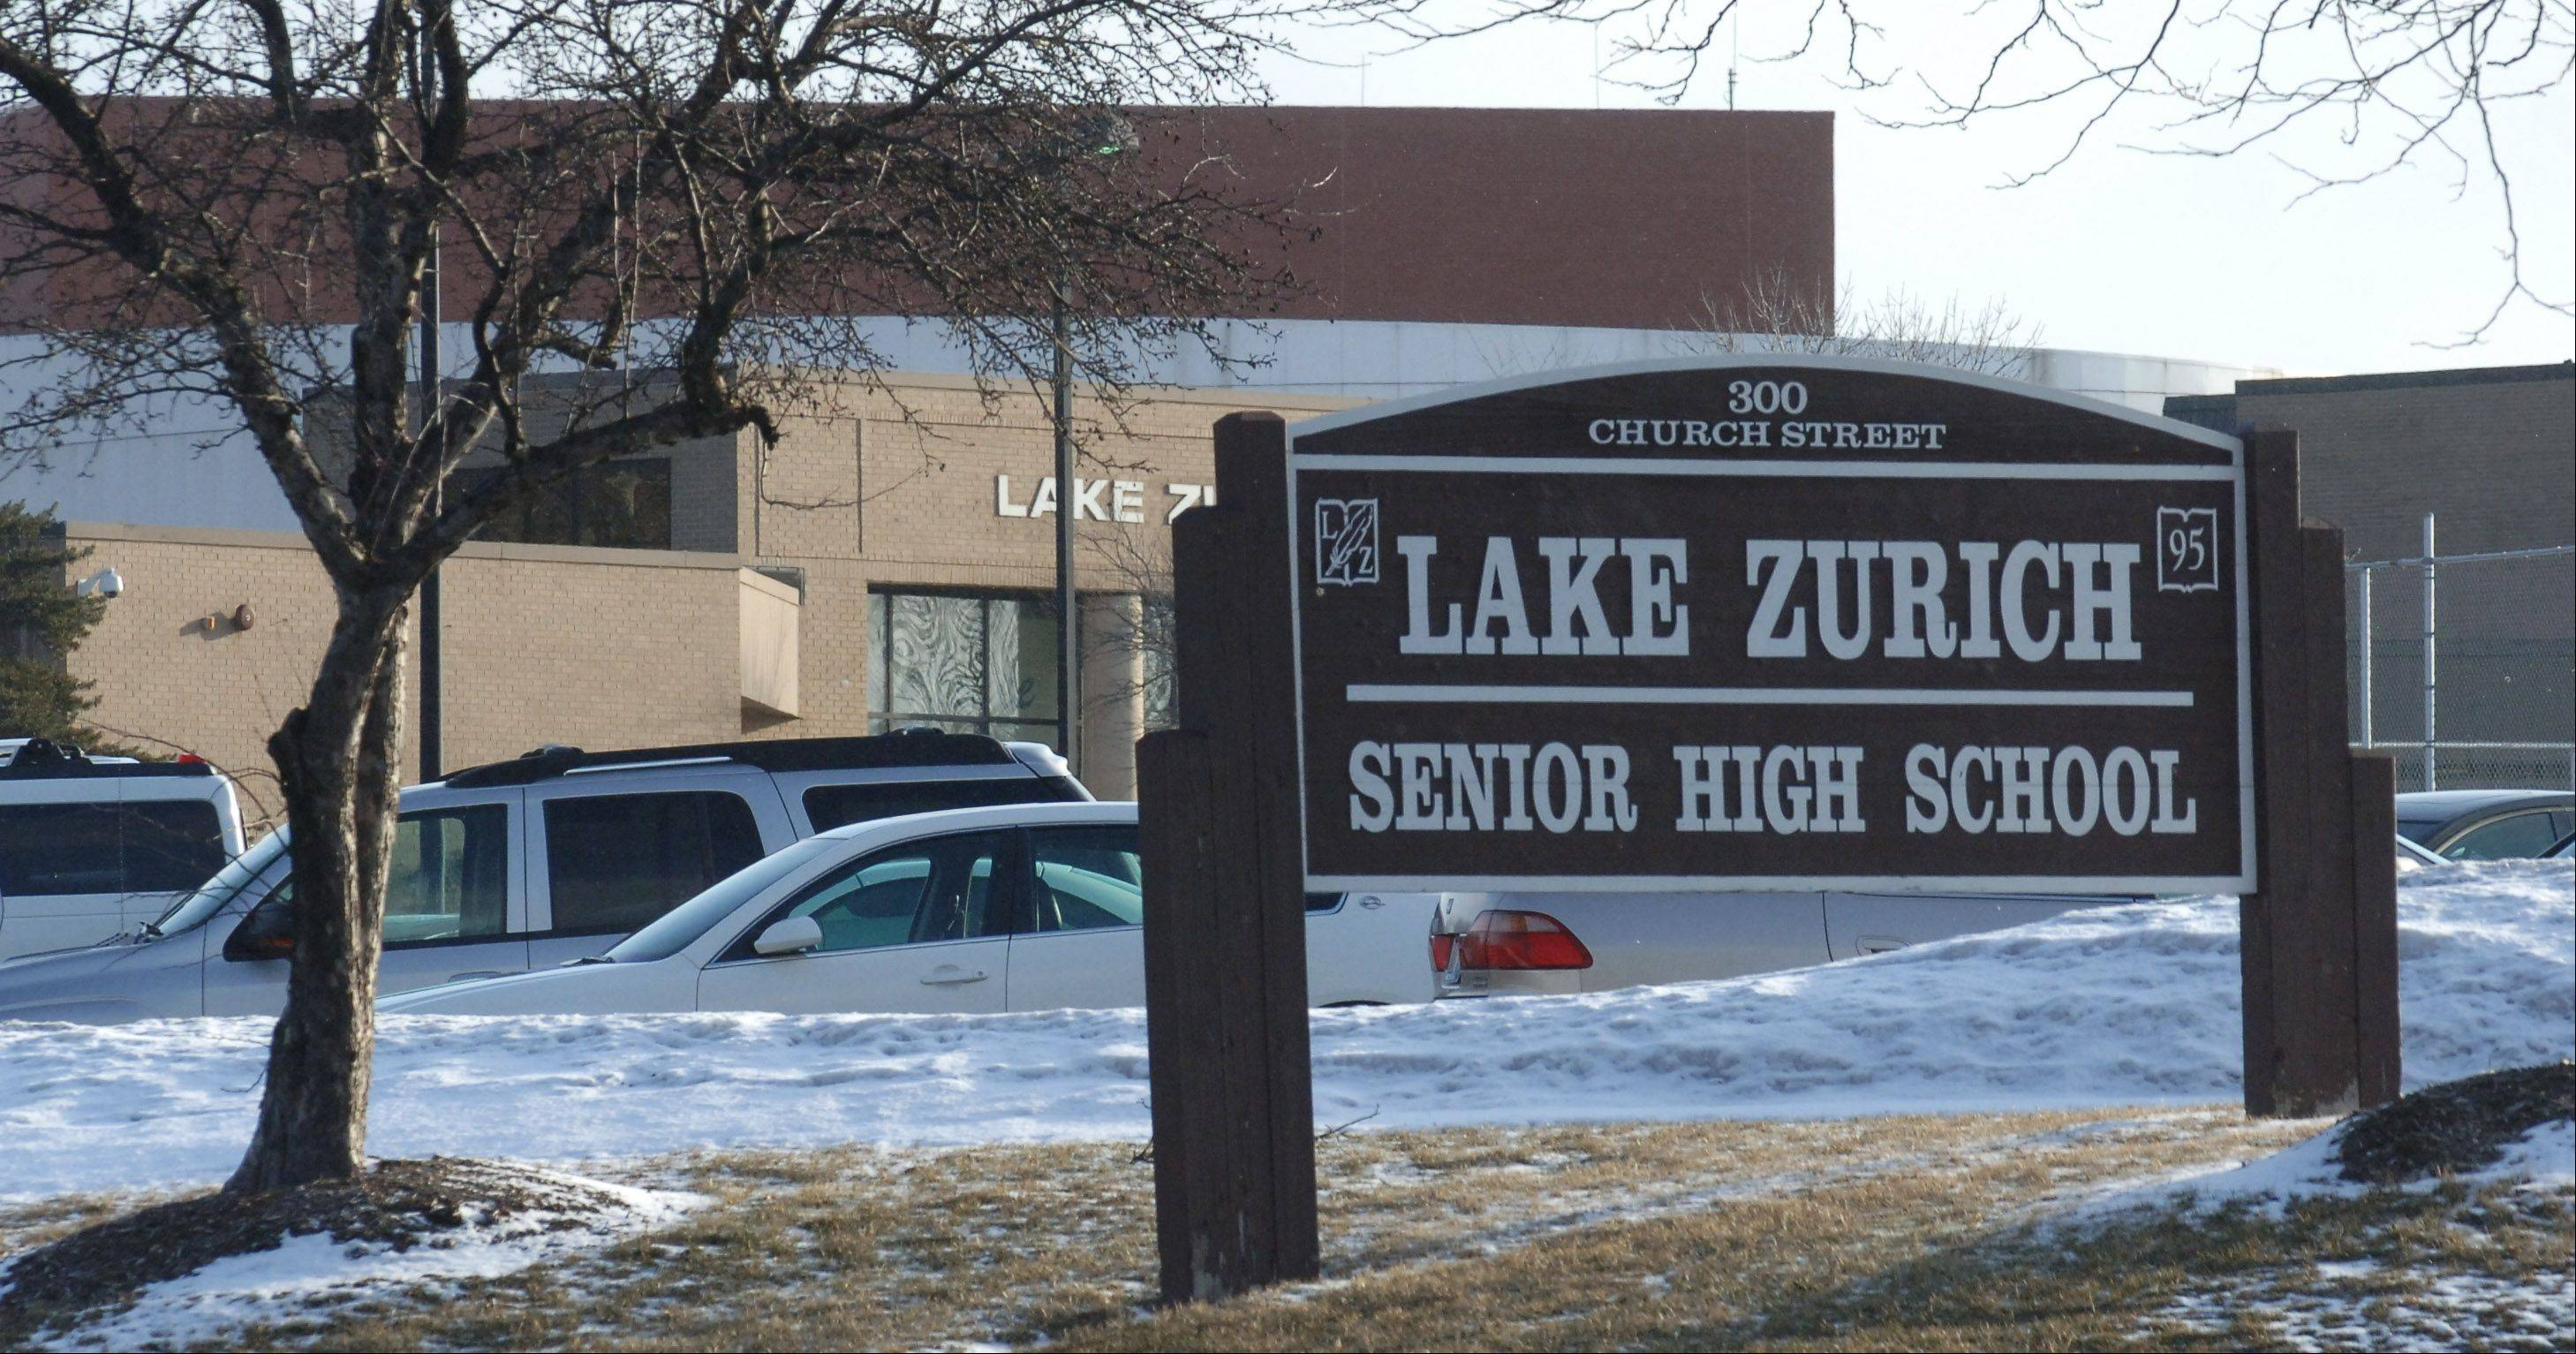 Lake Zurich Unit District 95 has settled one of two lawsuits claiming officials ignored complaints about inappropriate sexual conduct by a high school teacher toward a student about eight months before criminal charges were filed against him in 2010.